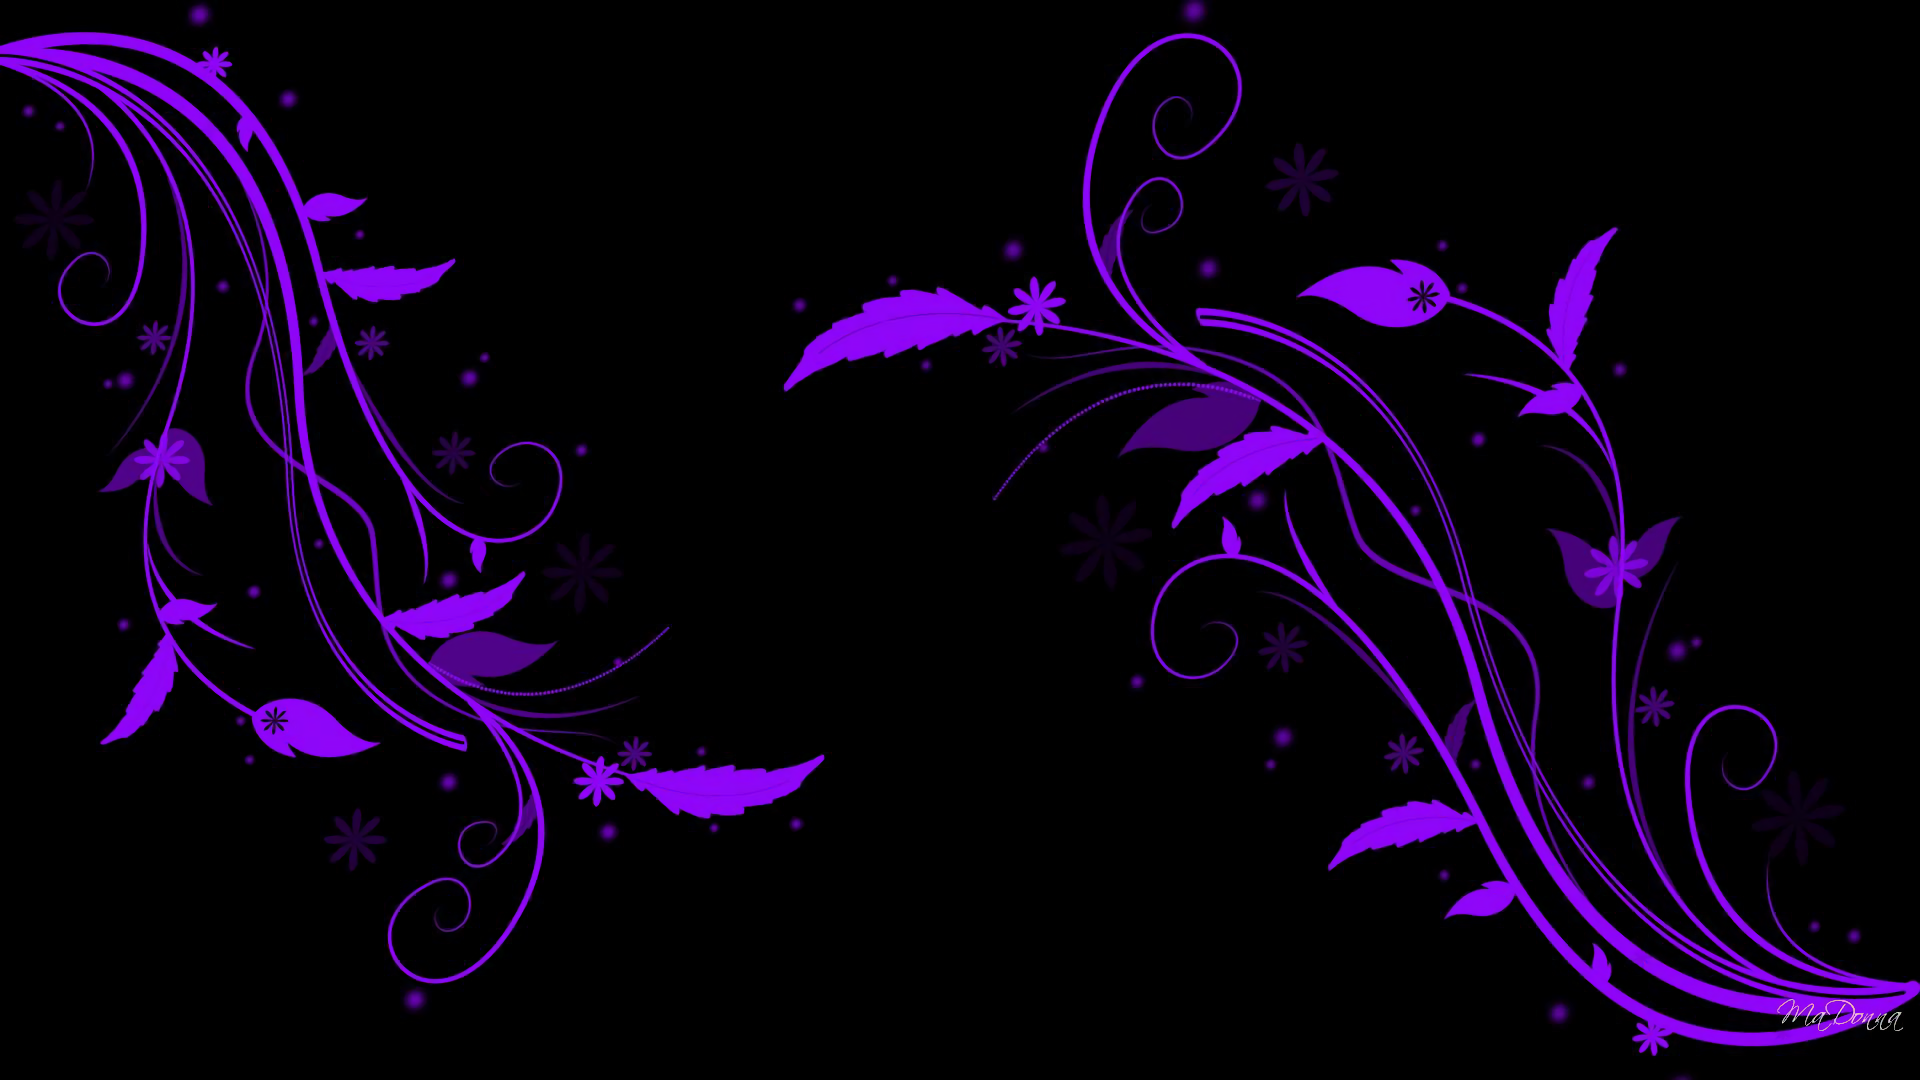 Purple Leaf Abstract Full HD Wallpaper And Background Image